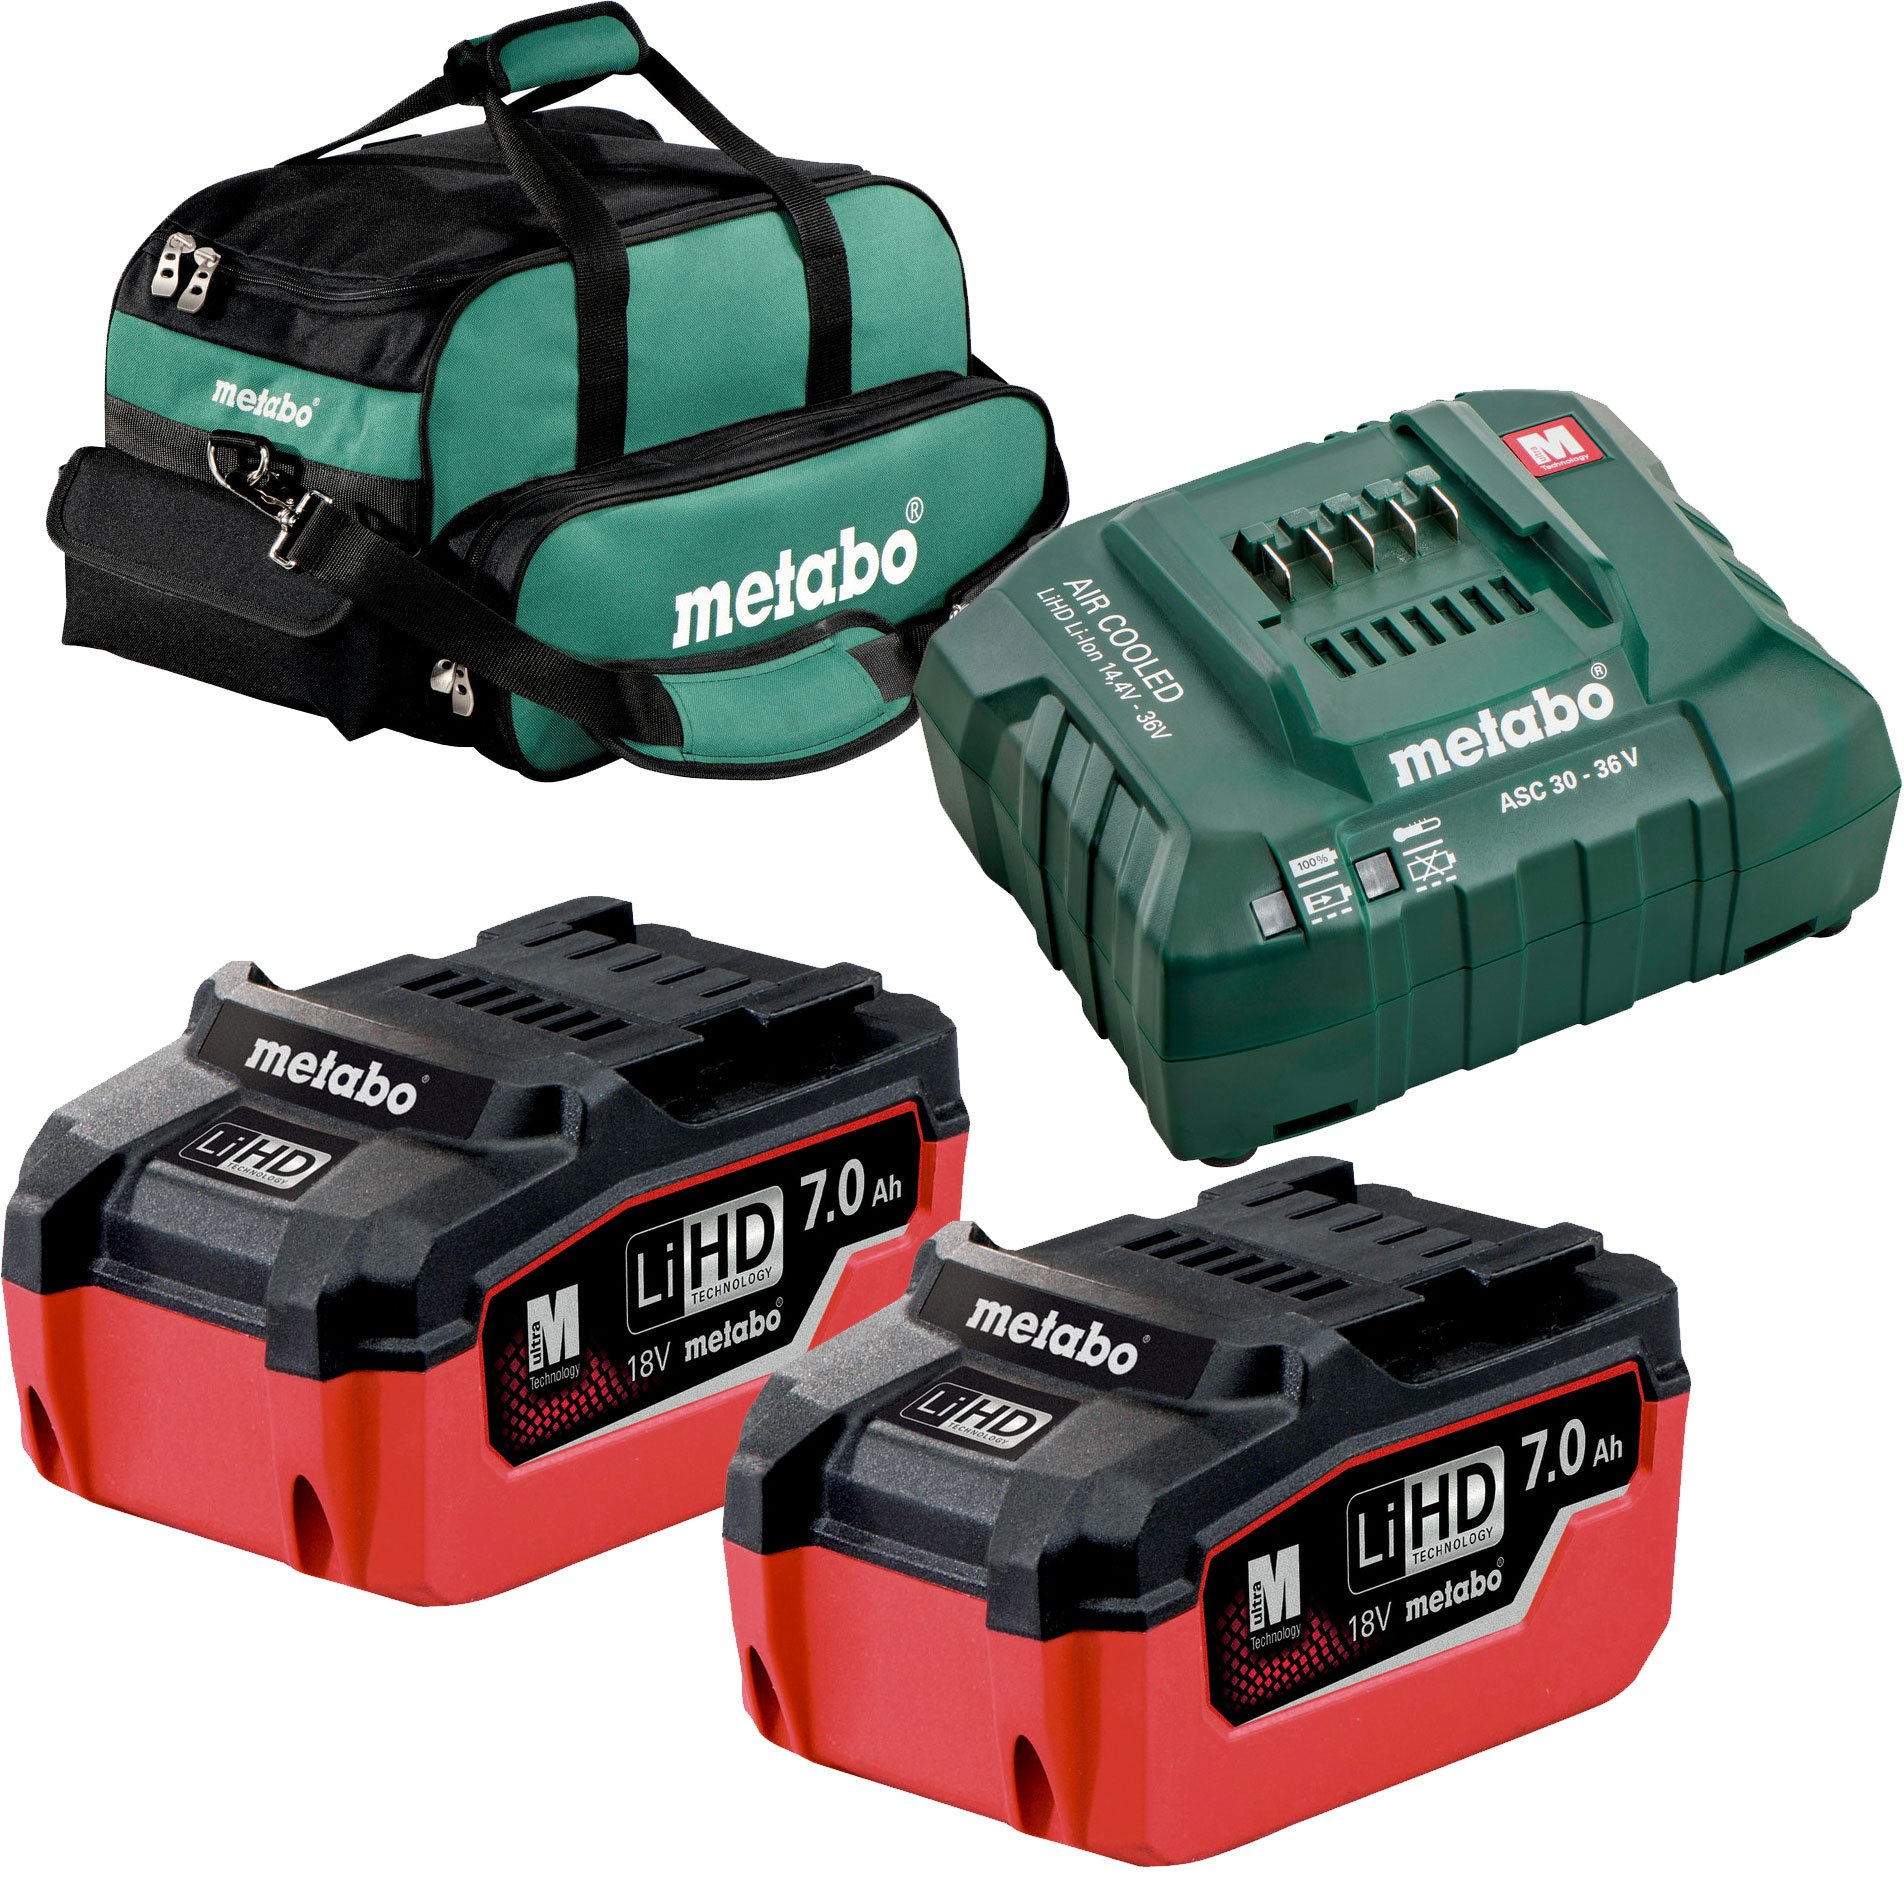 Metabo US625345002 LiHd Ultra-M Pro Cordless Starter Kit w/ 2x 7ah + Charger